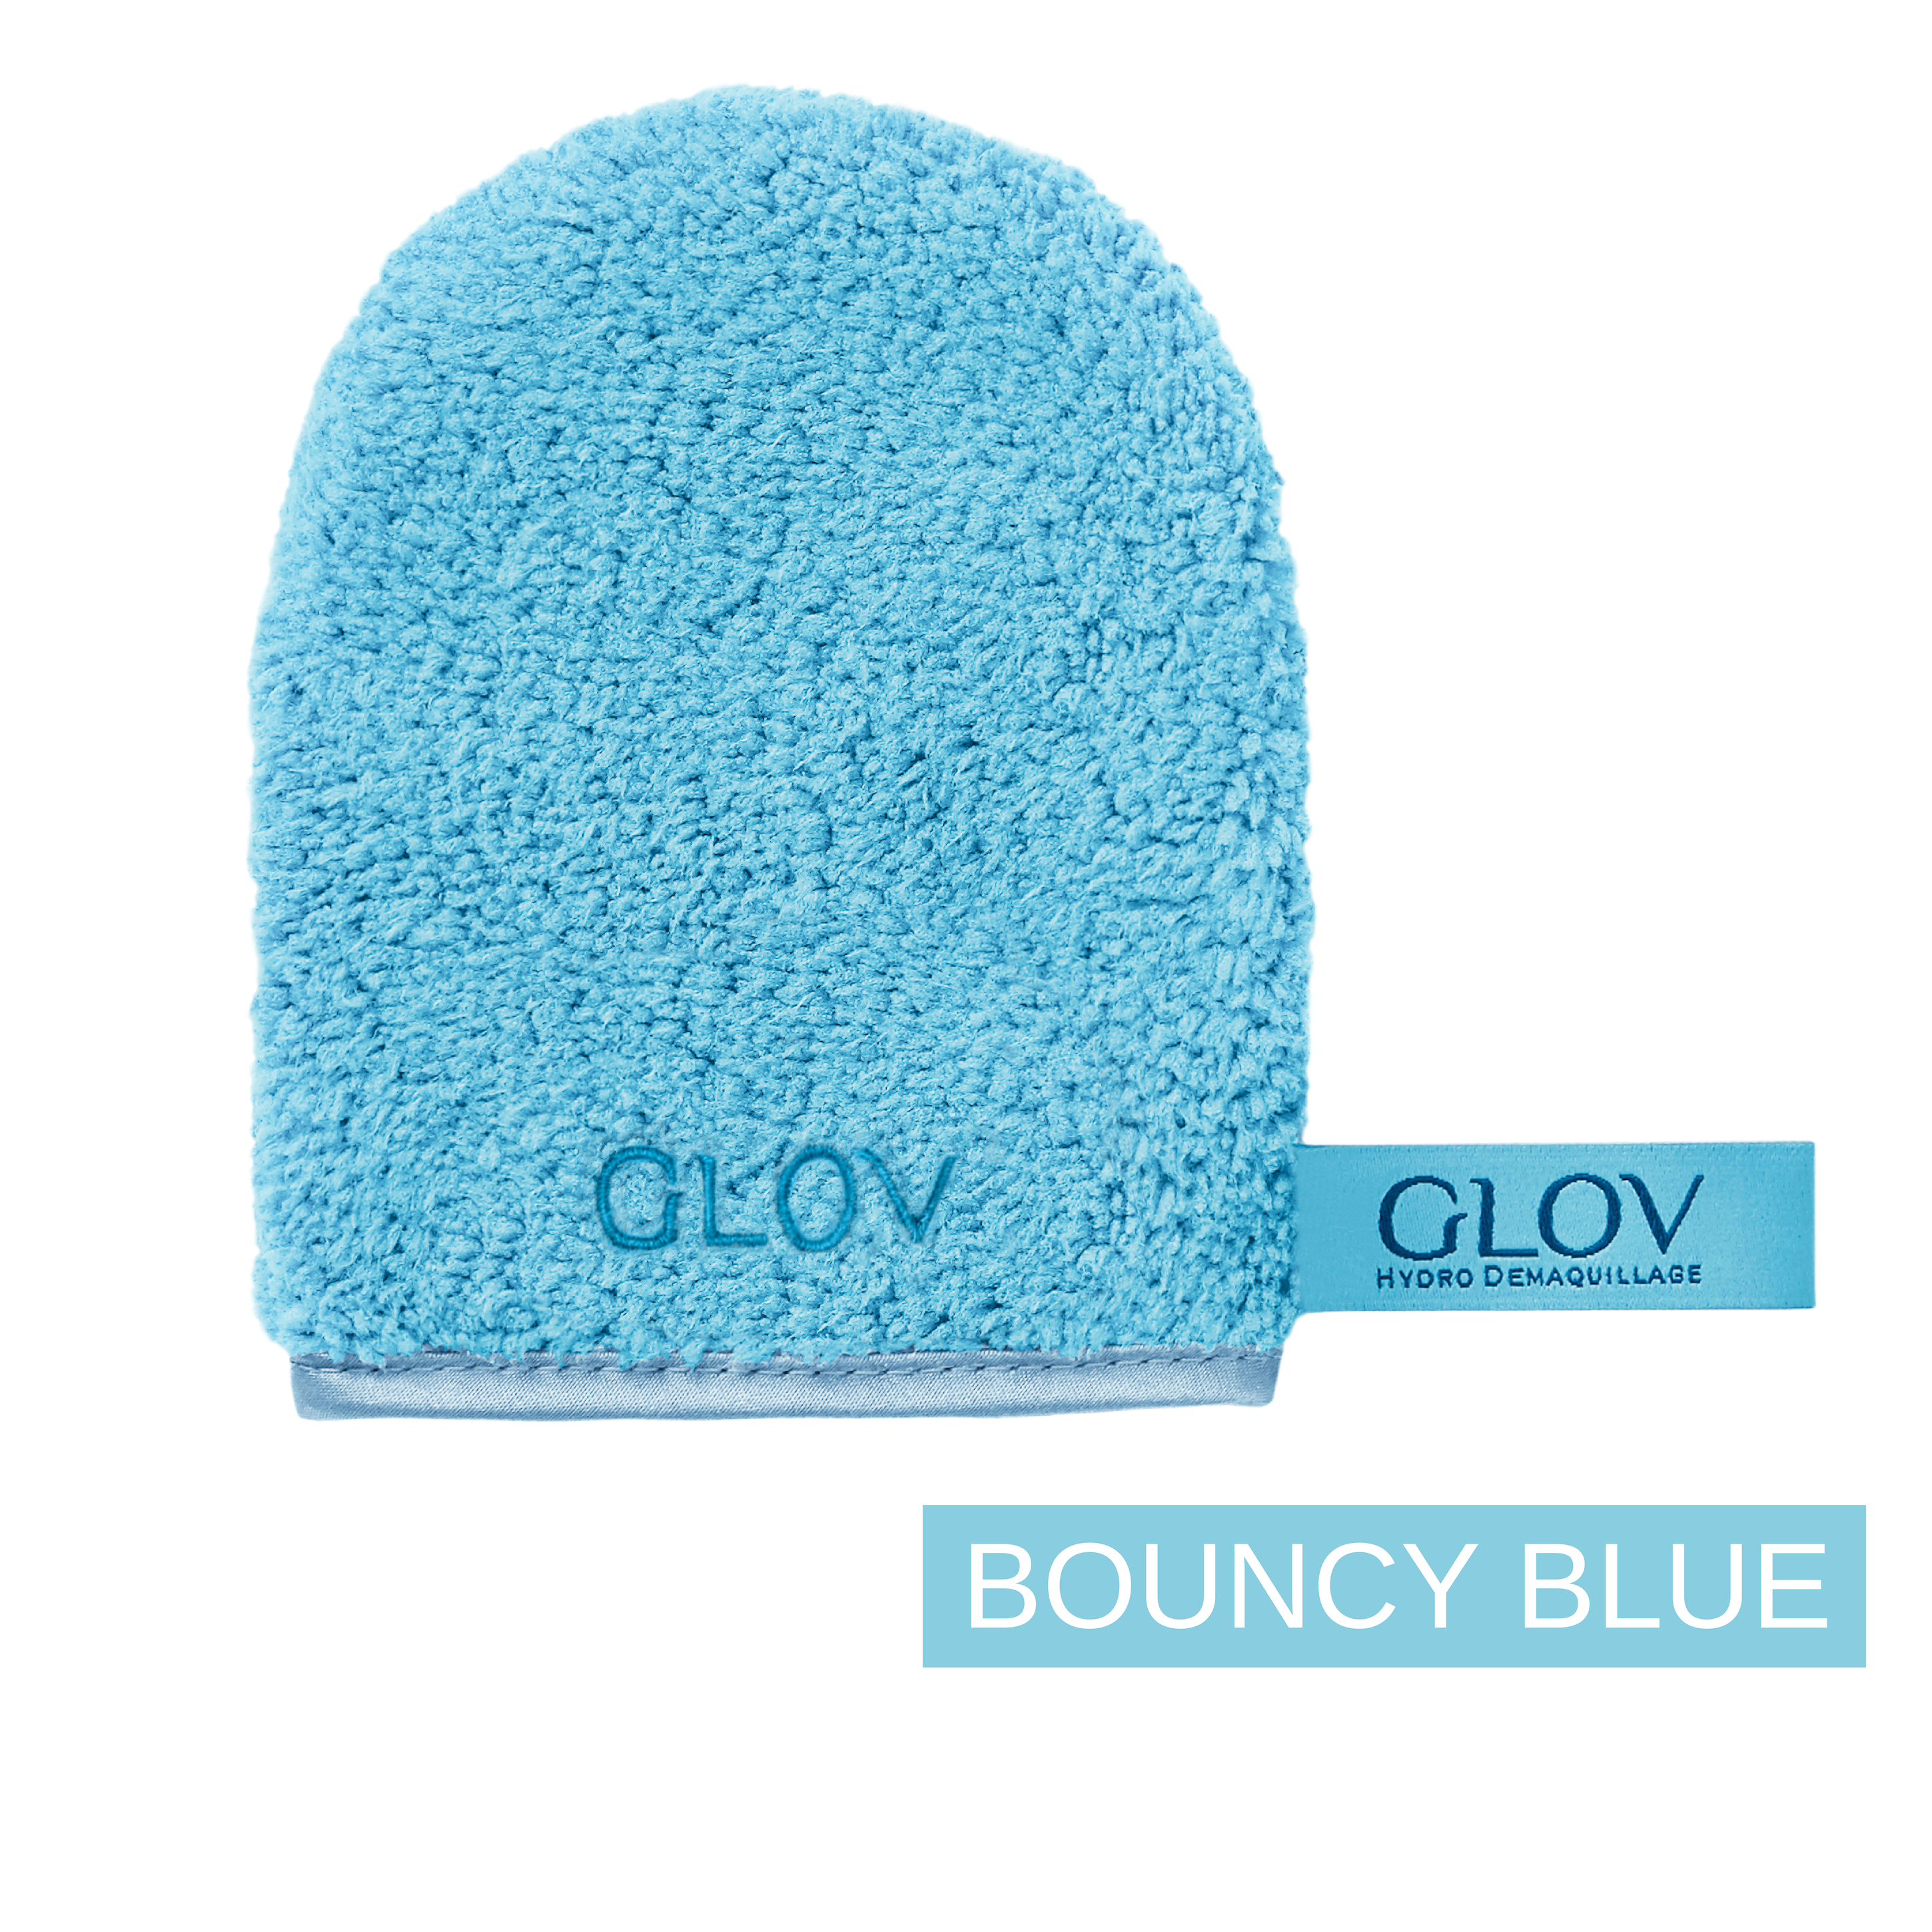 glov.gr, glov makeup remover only with water for all skin types, bouncy blue